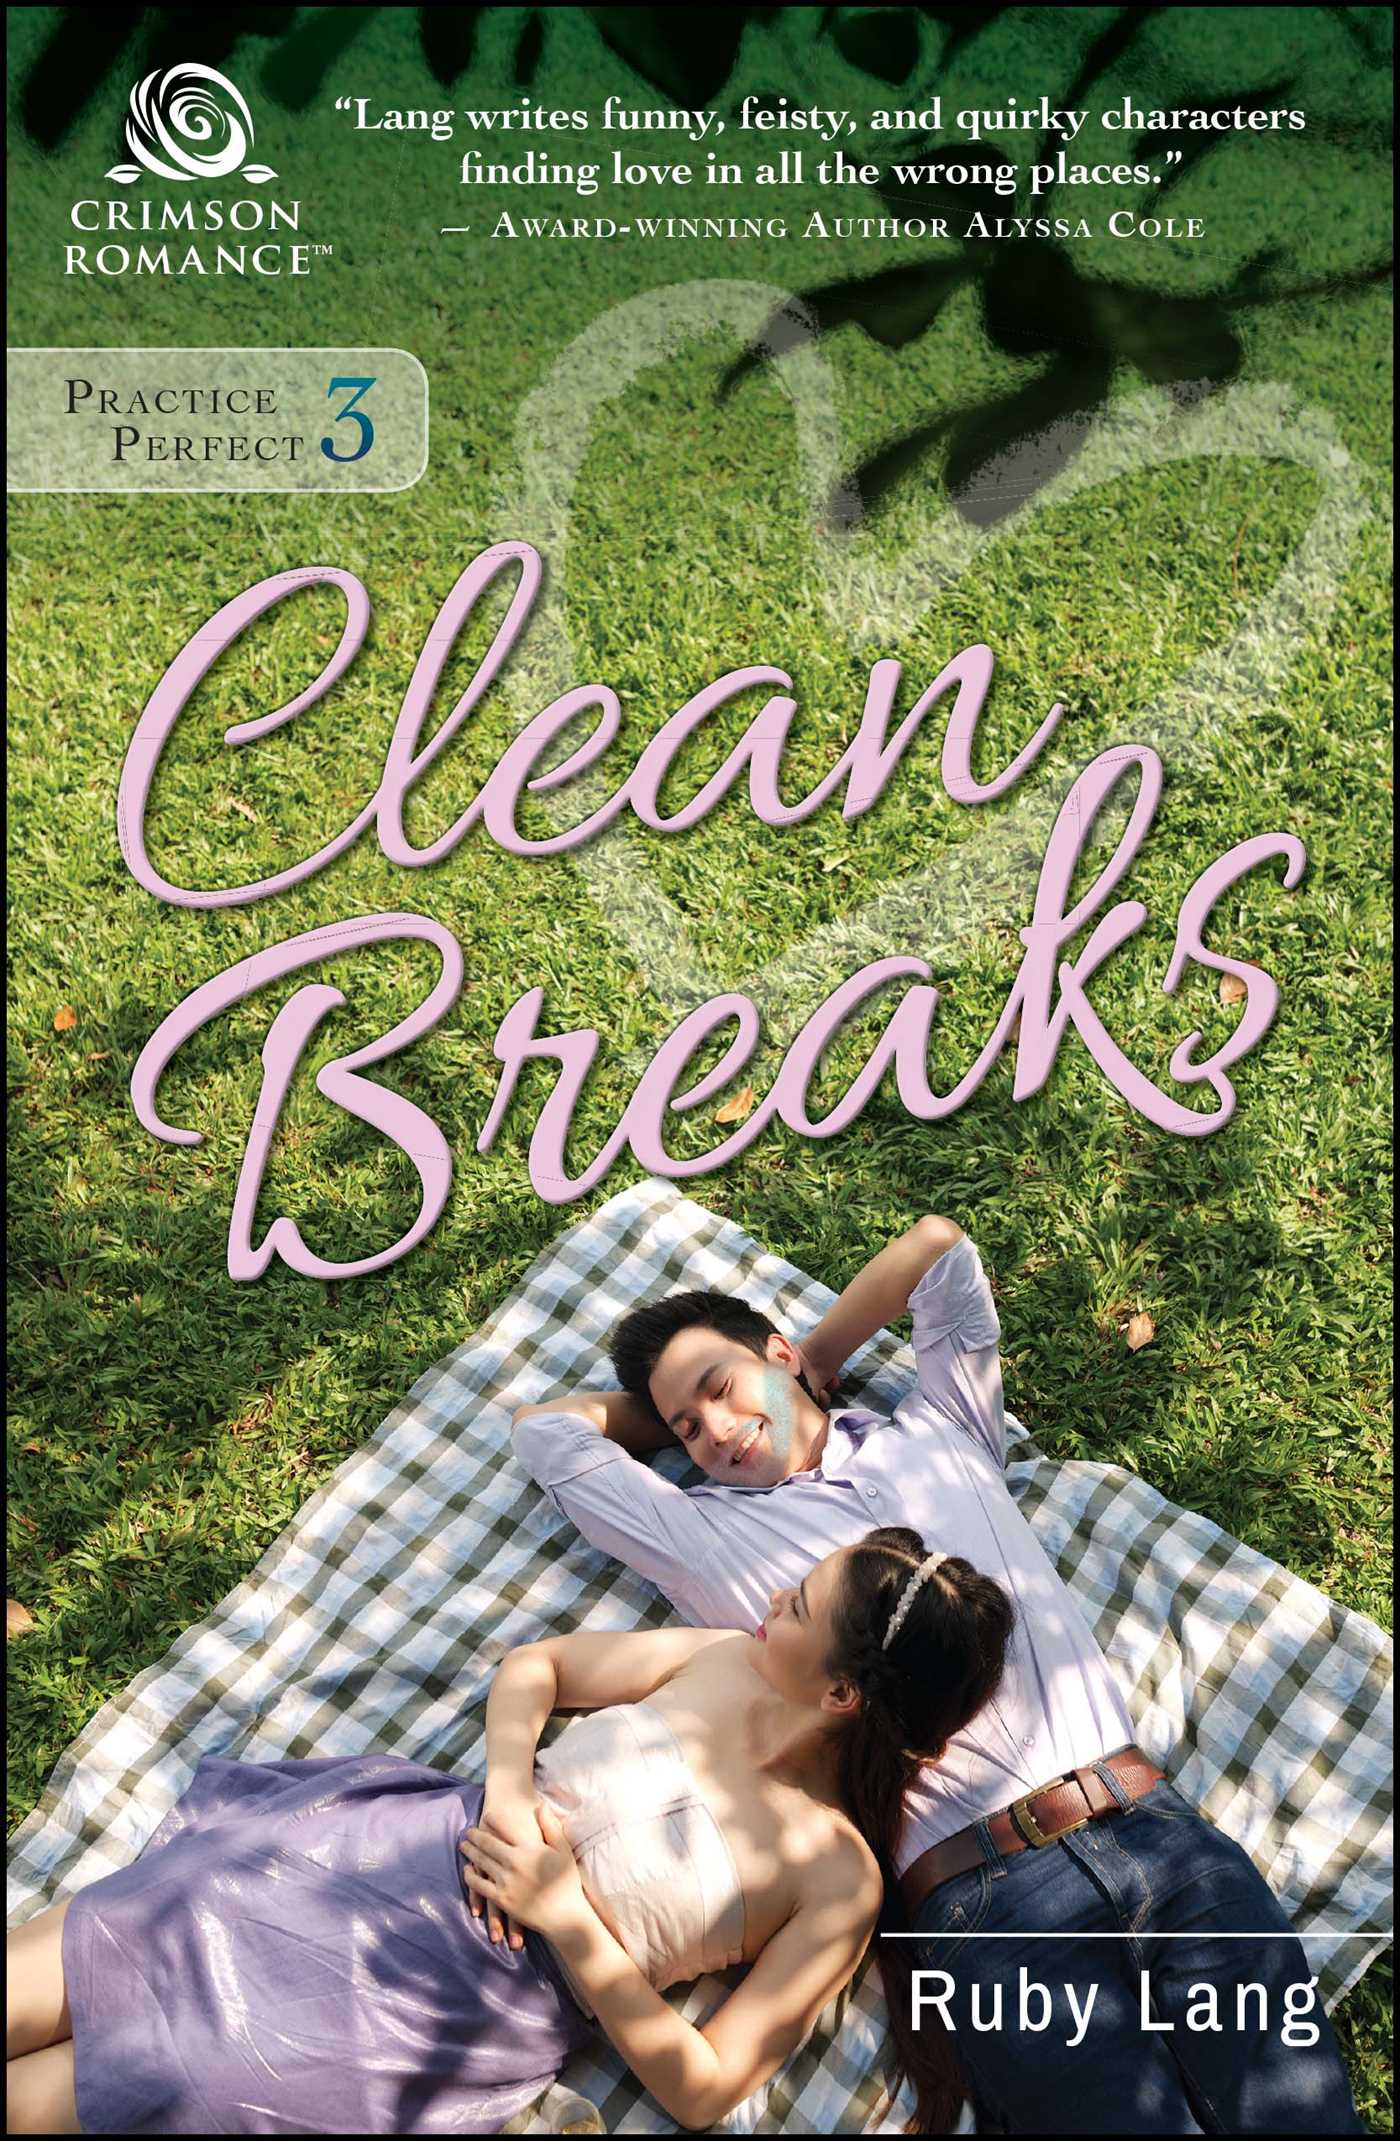 Clean breaks 9781507203927 hr